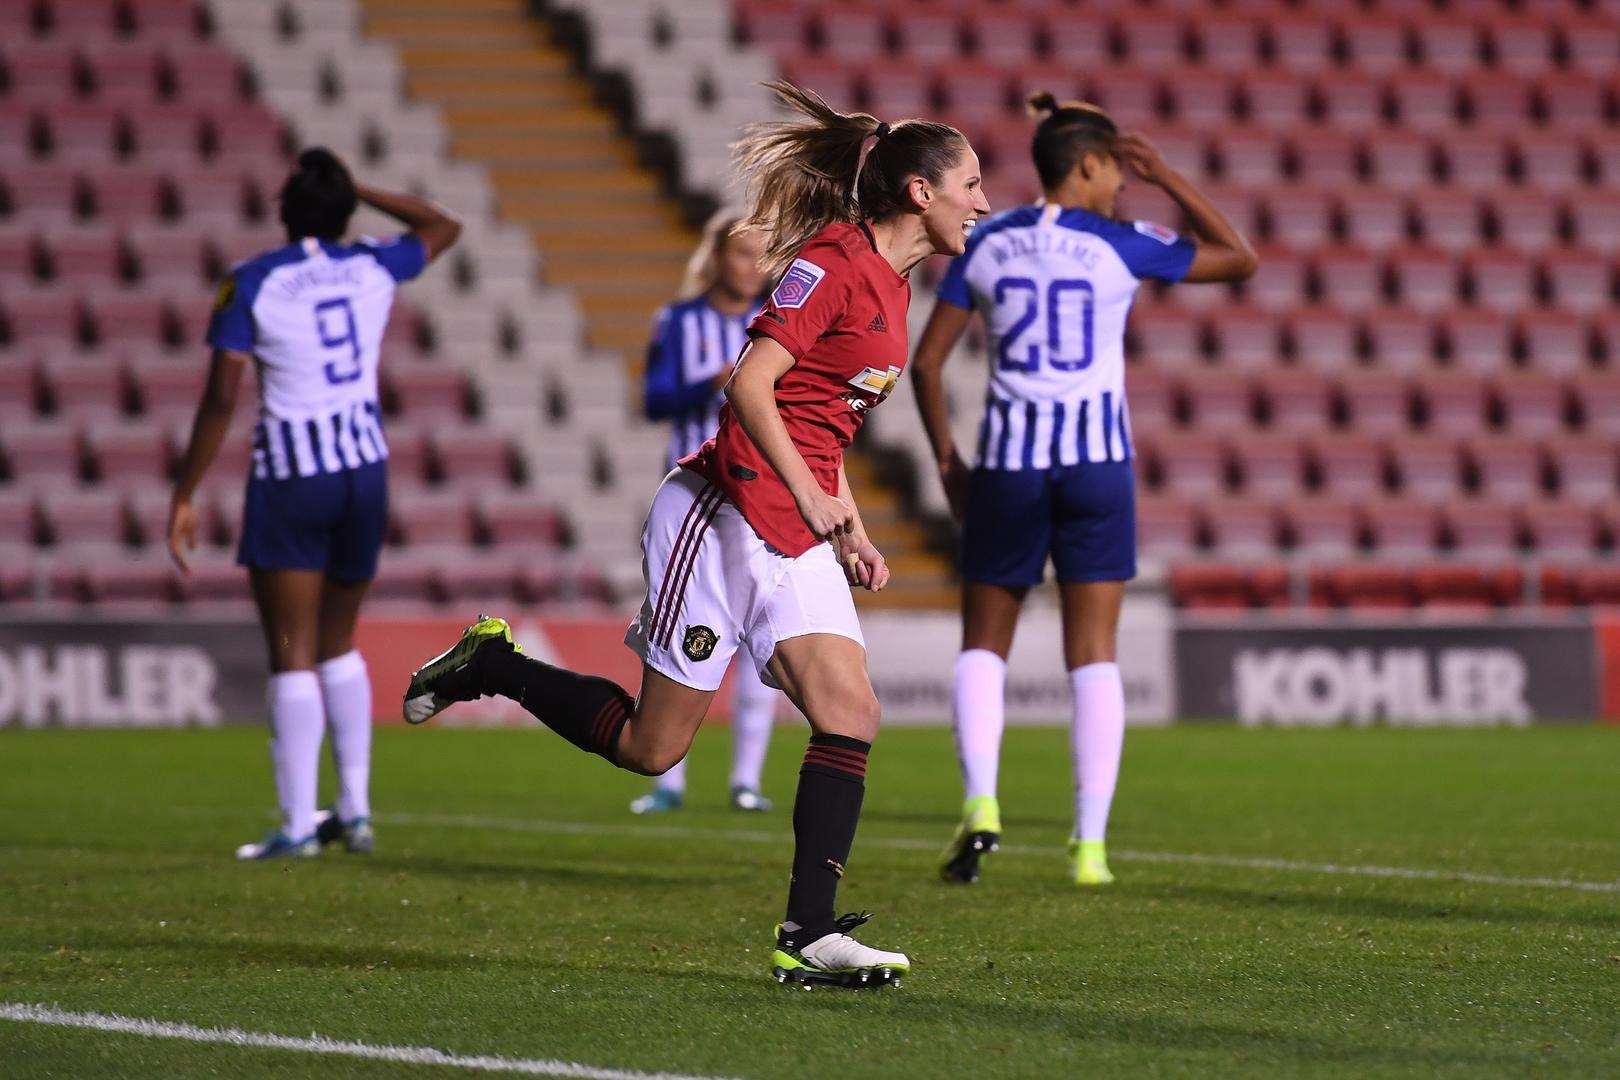 Abbie McManus celebrates scoring for Manchester United Women against Brighton & Hove Albion Women.